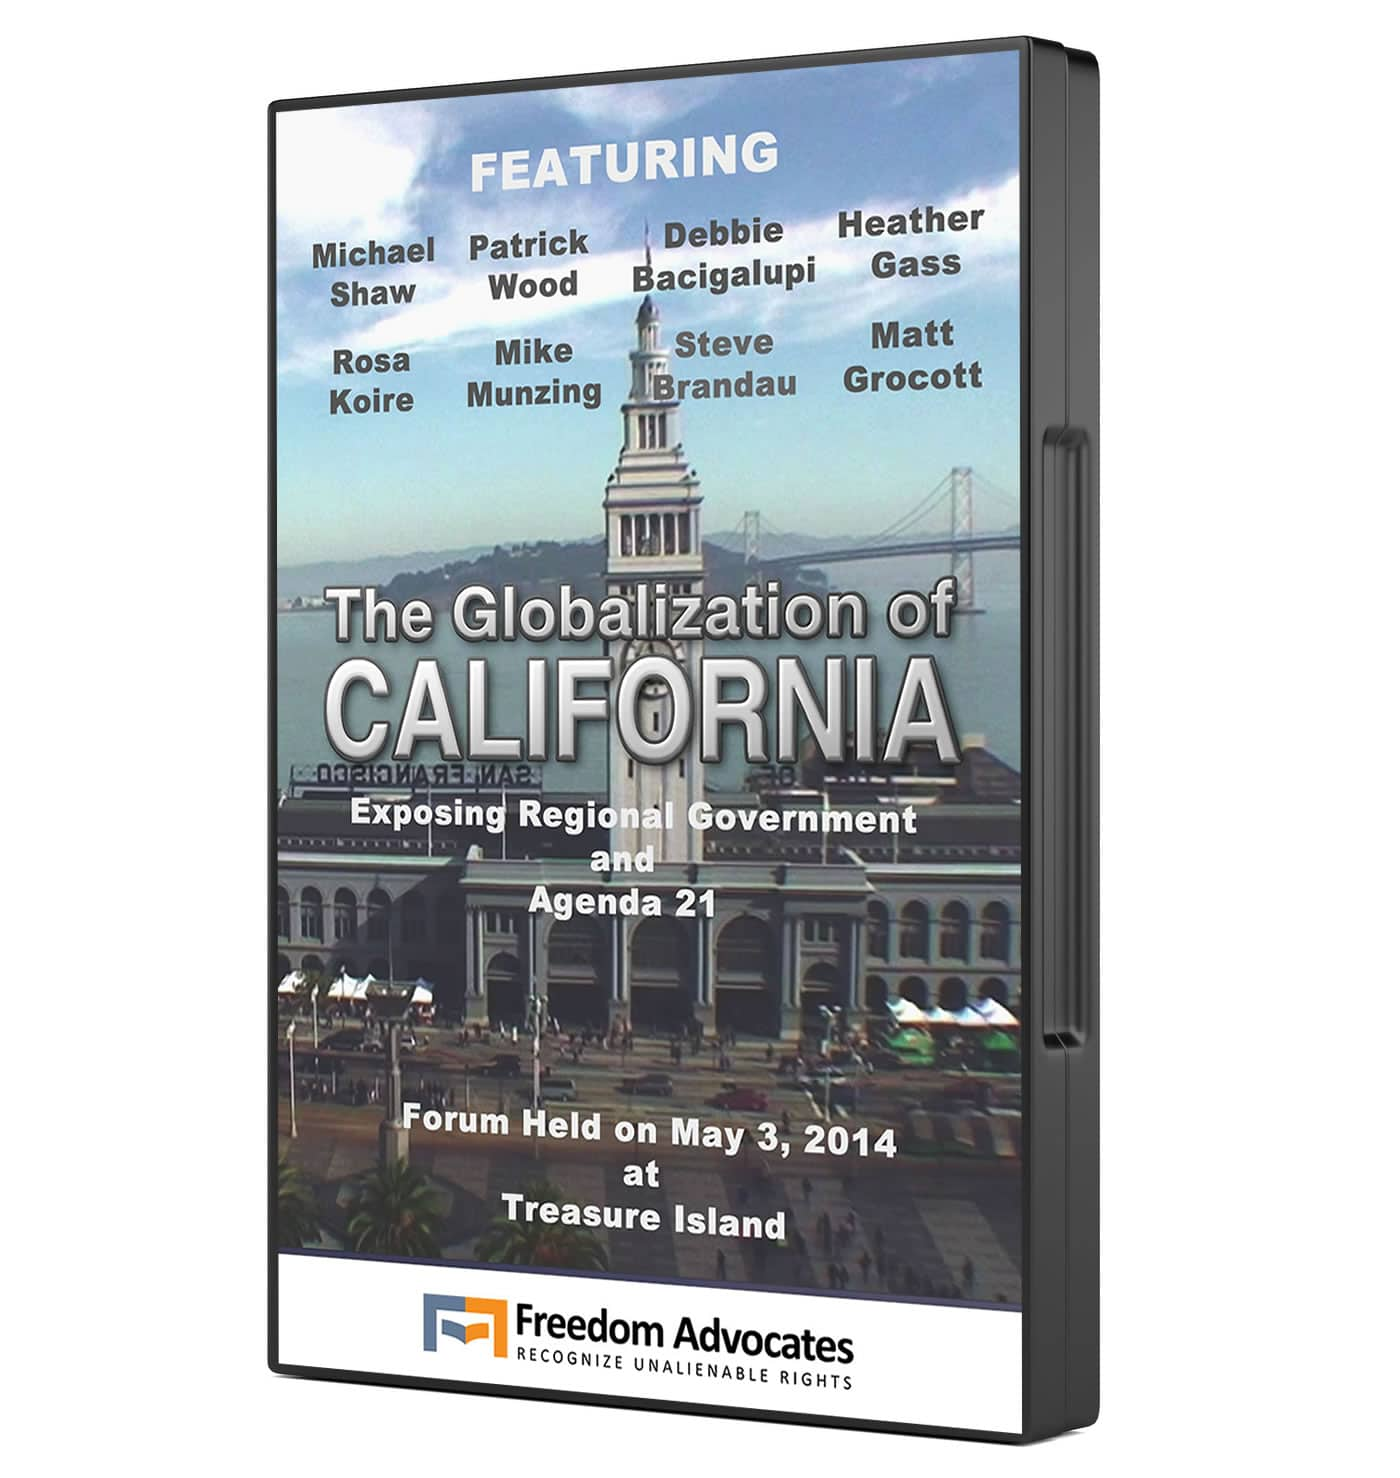 The Globalization of California